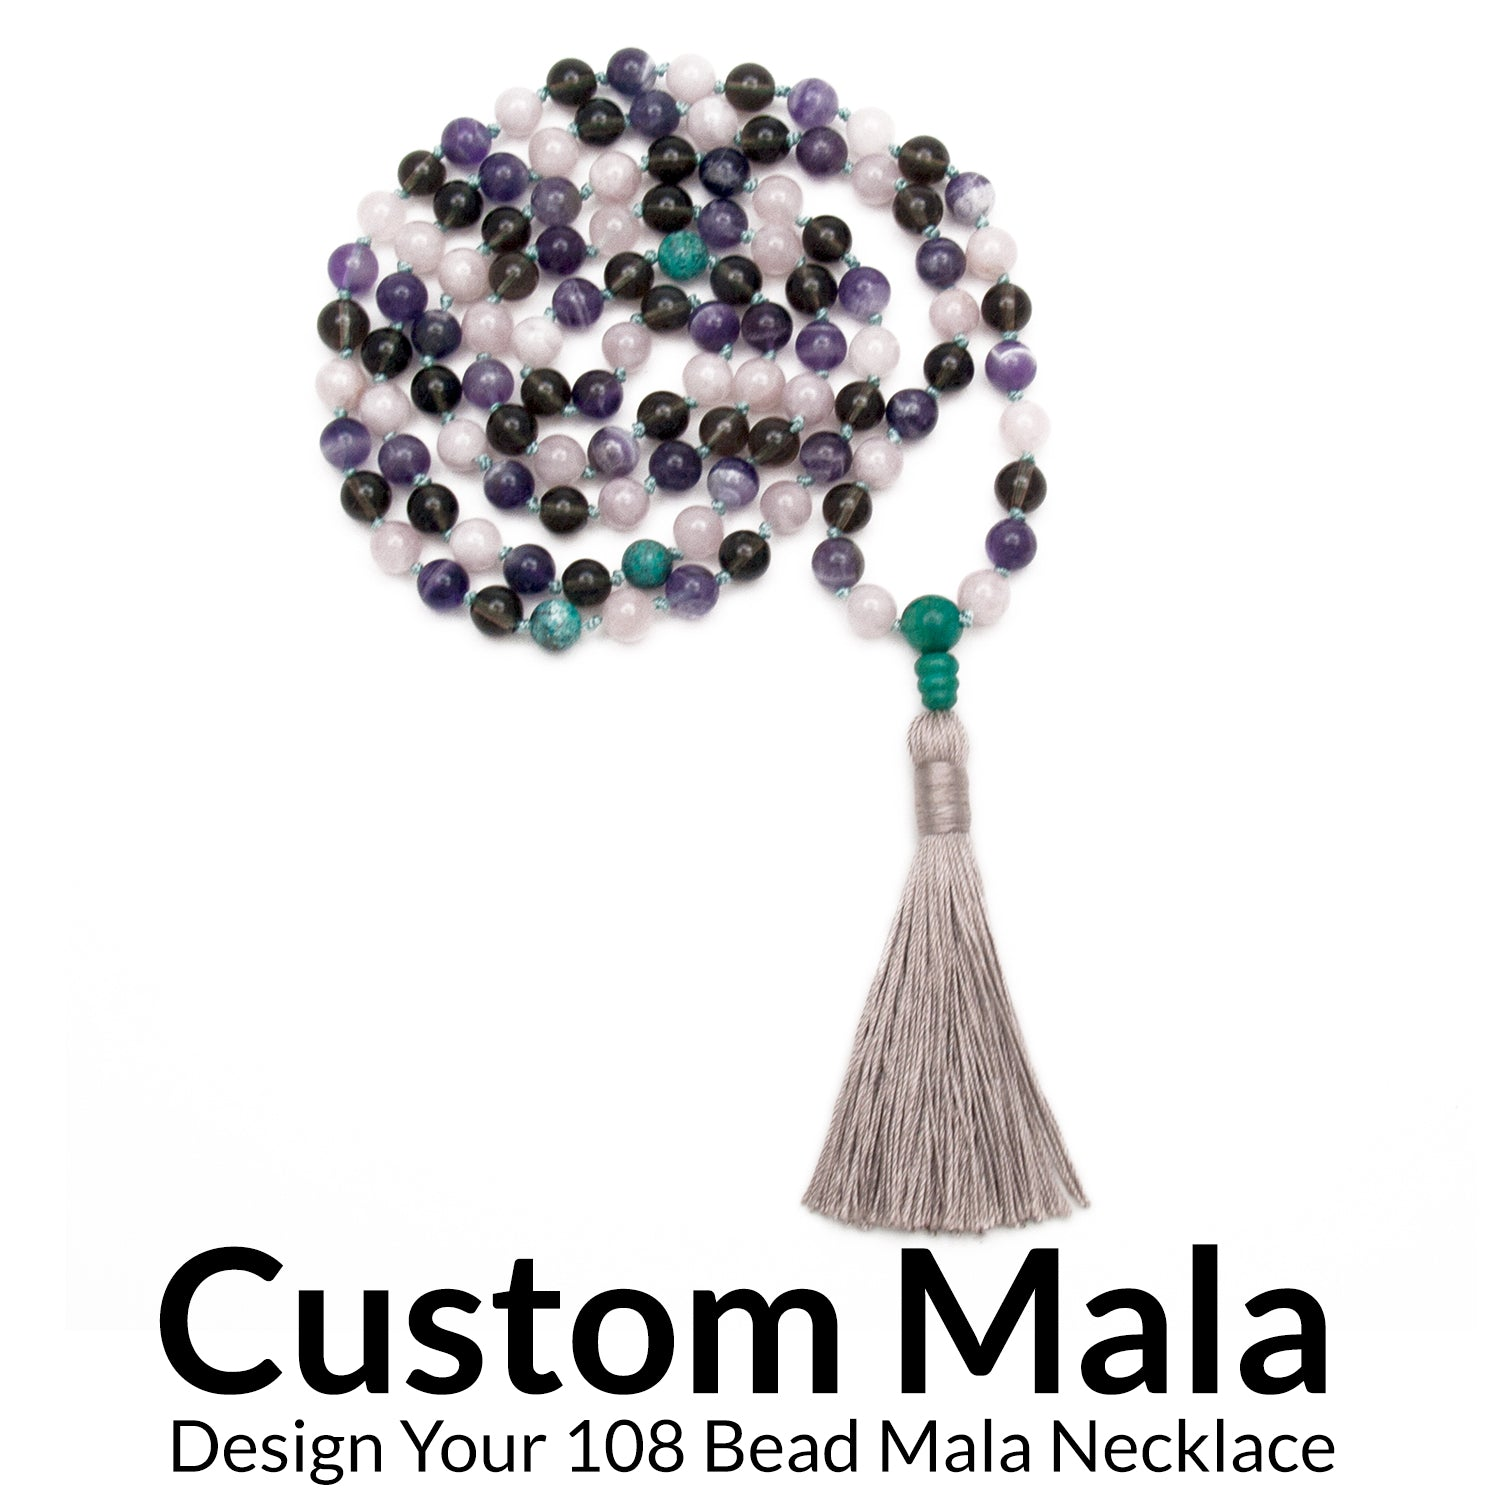 Custom Mala Beads by Golden Lotus Mala